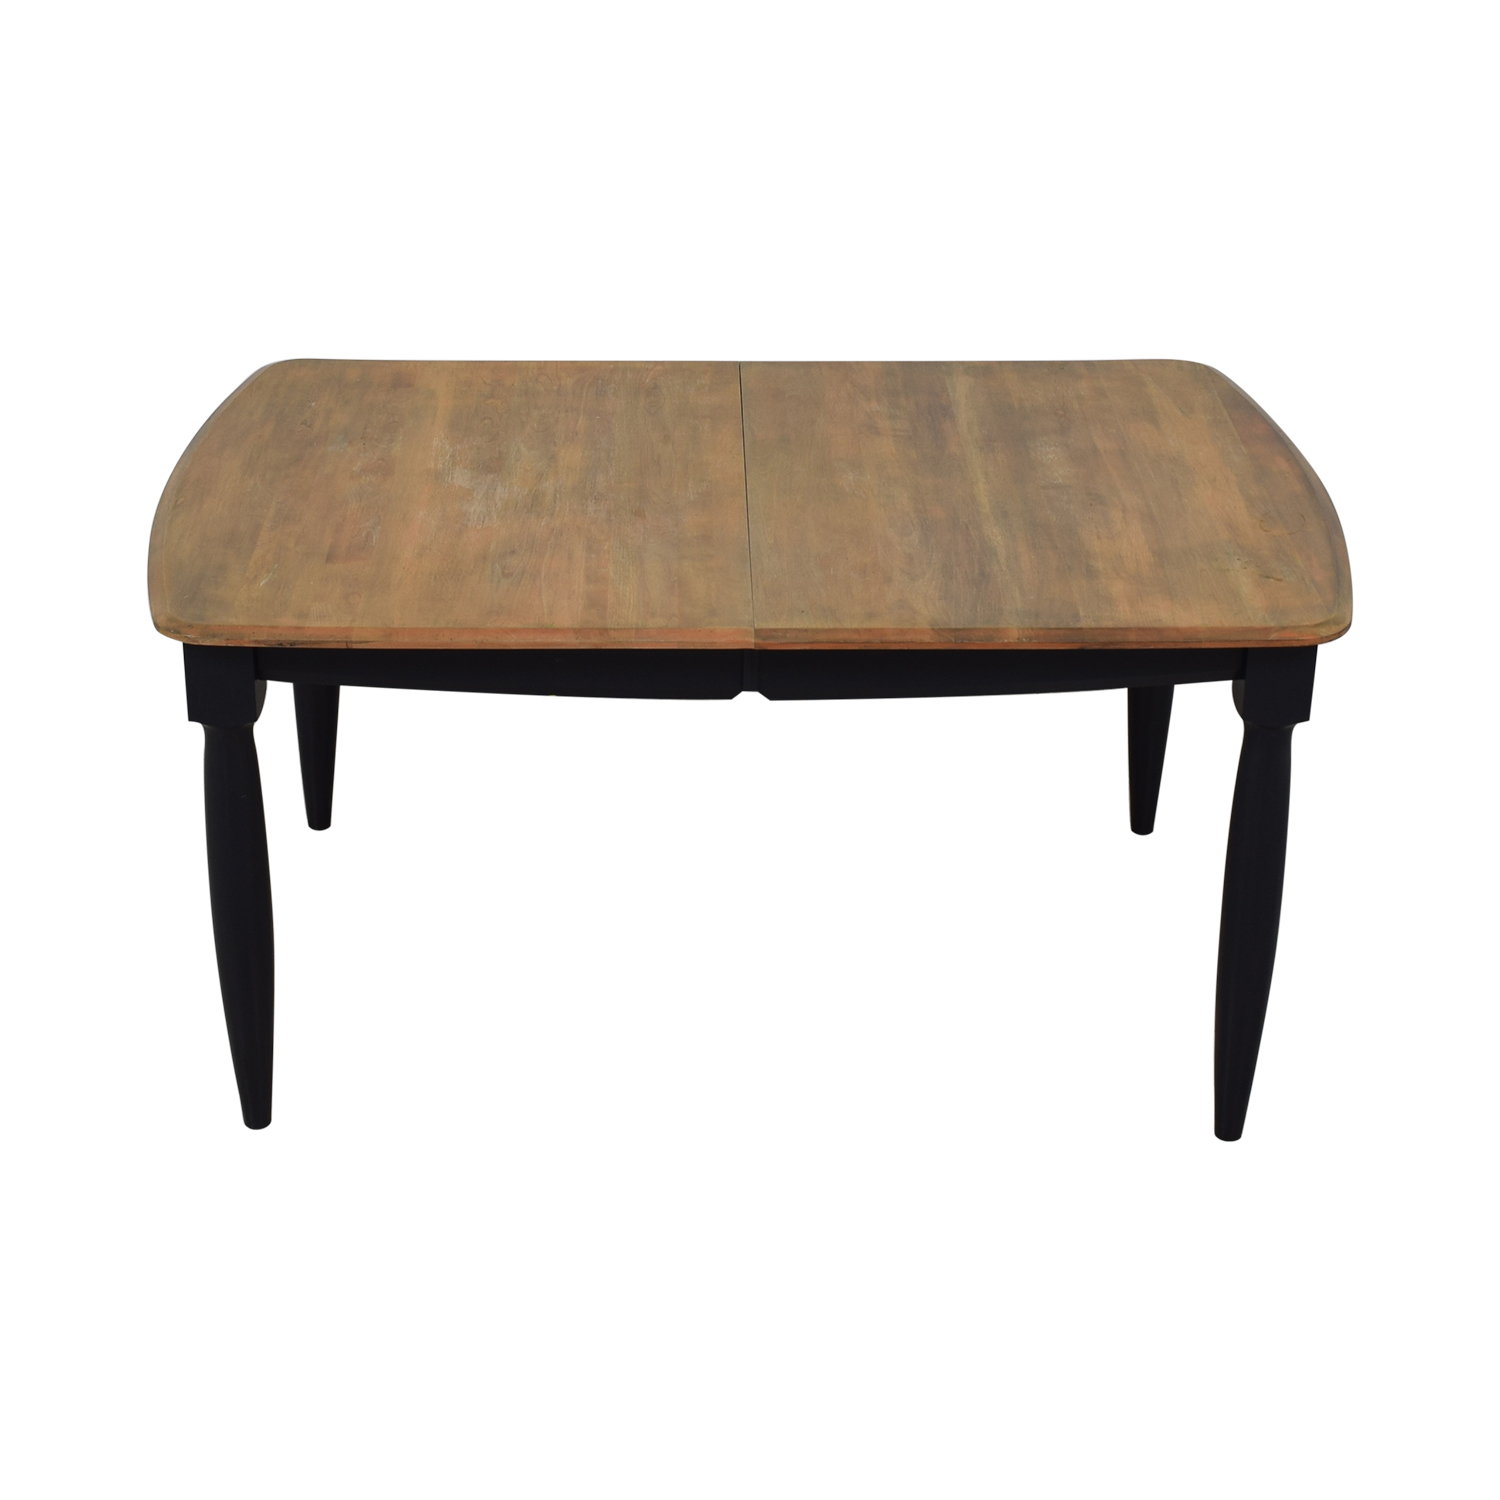 Canadel Canadel Kitchen Table nj